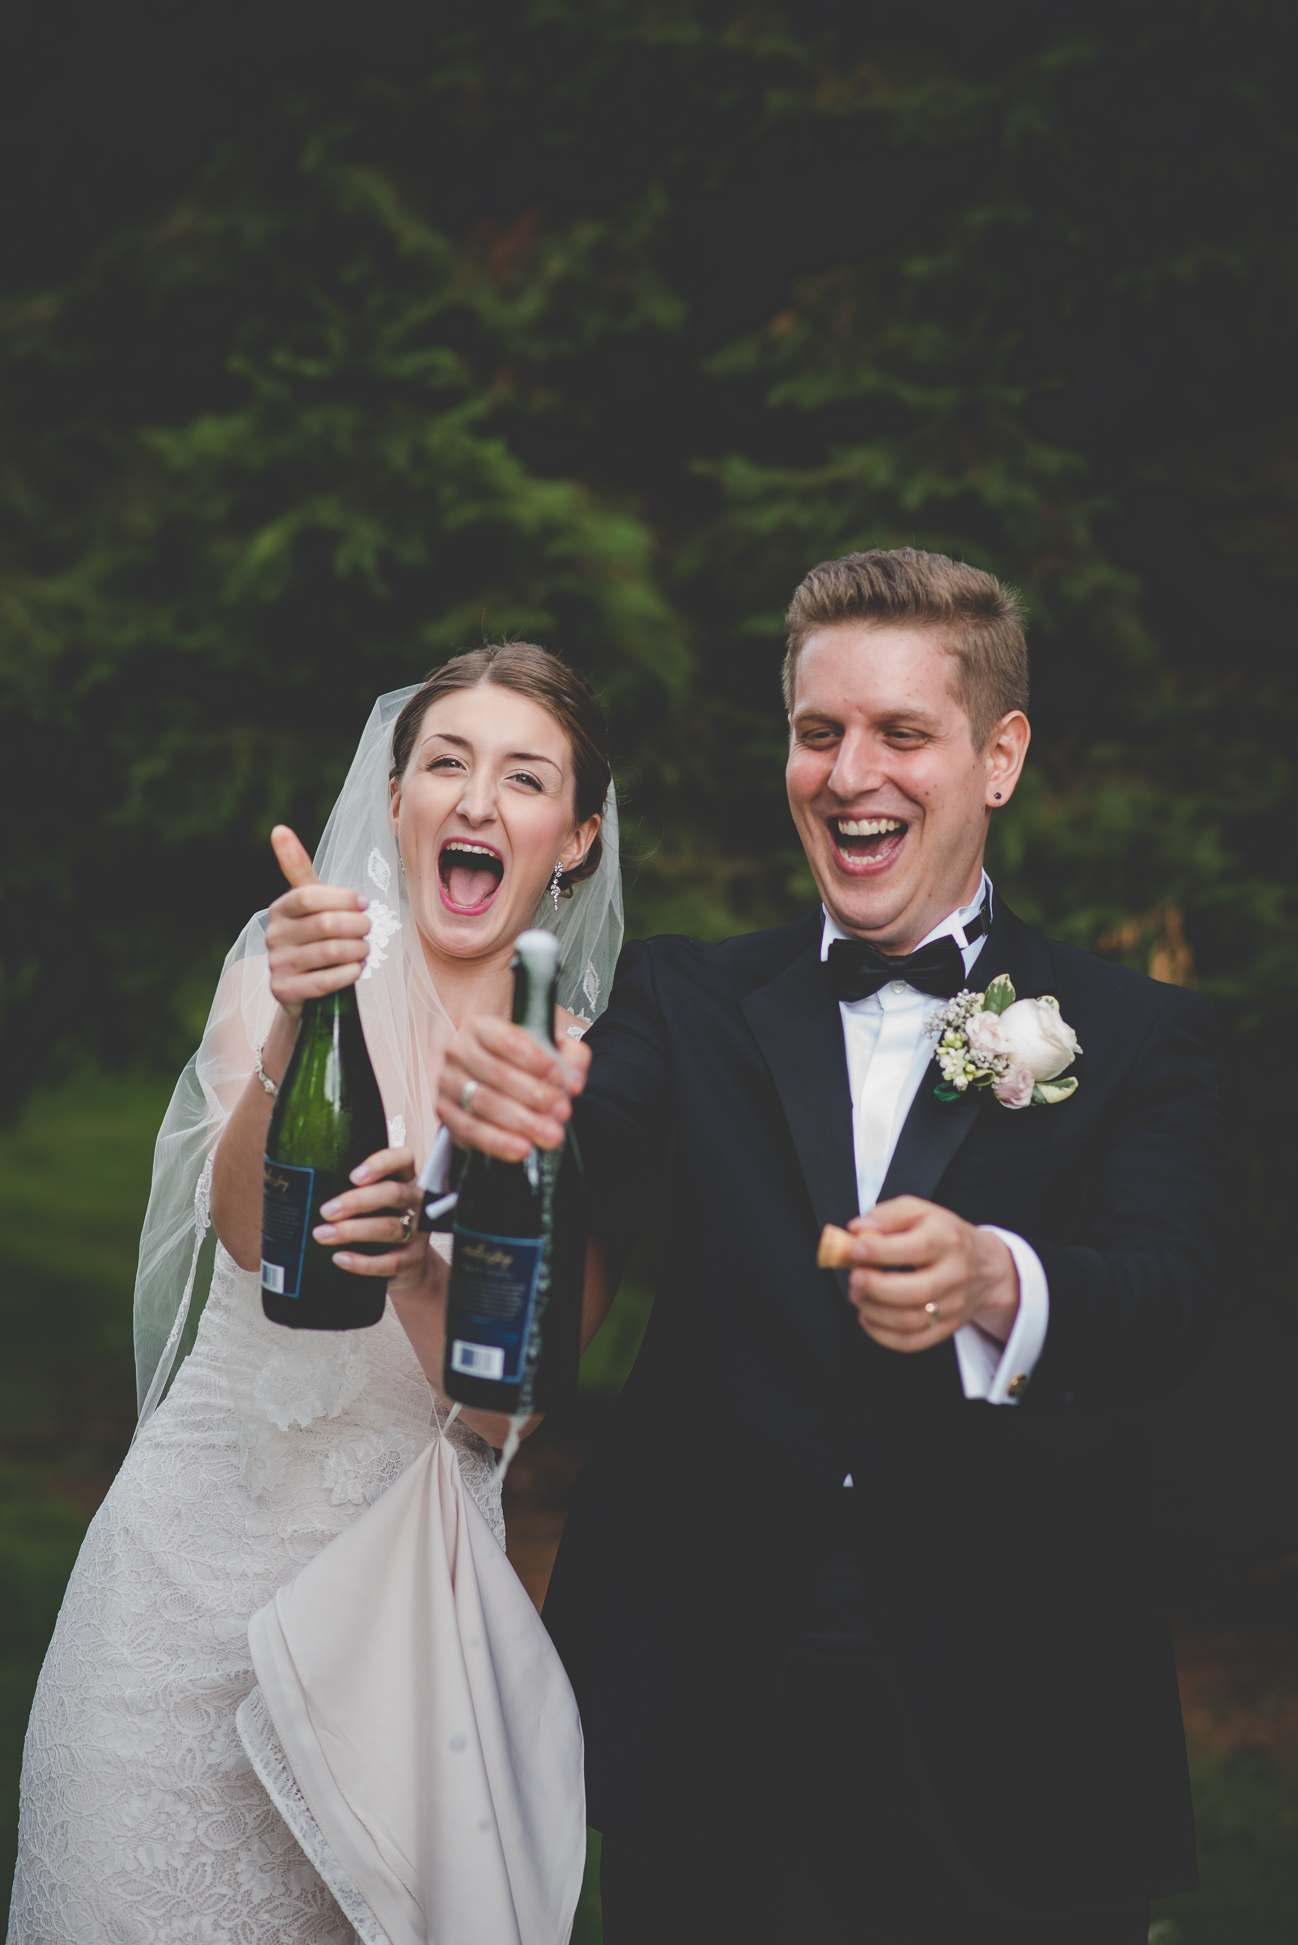 bride and groom popping champagne bottles with wedding party after wedding ceremony